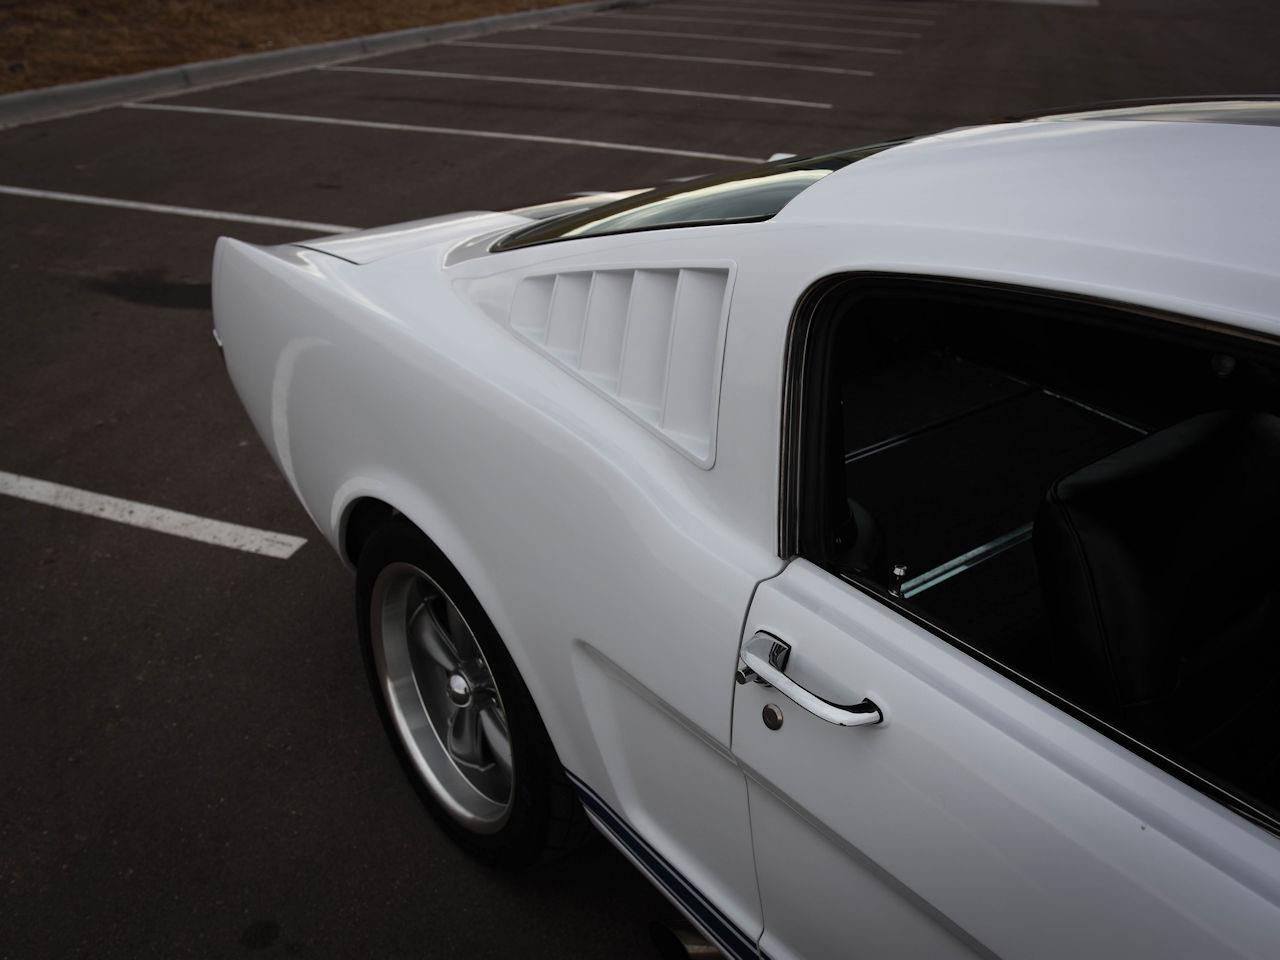 Large Picture of Classic 1965 Mustang located in O'Fallon Illinois - $49,995.00 Offered by Gateway Classic Cars - Denver - MOAC